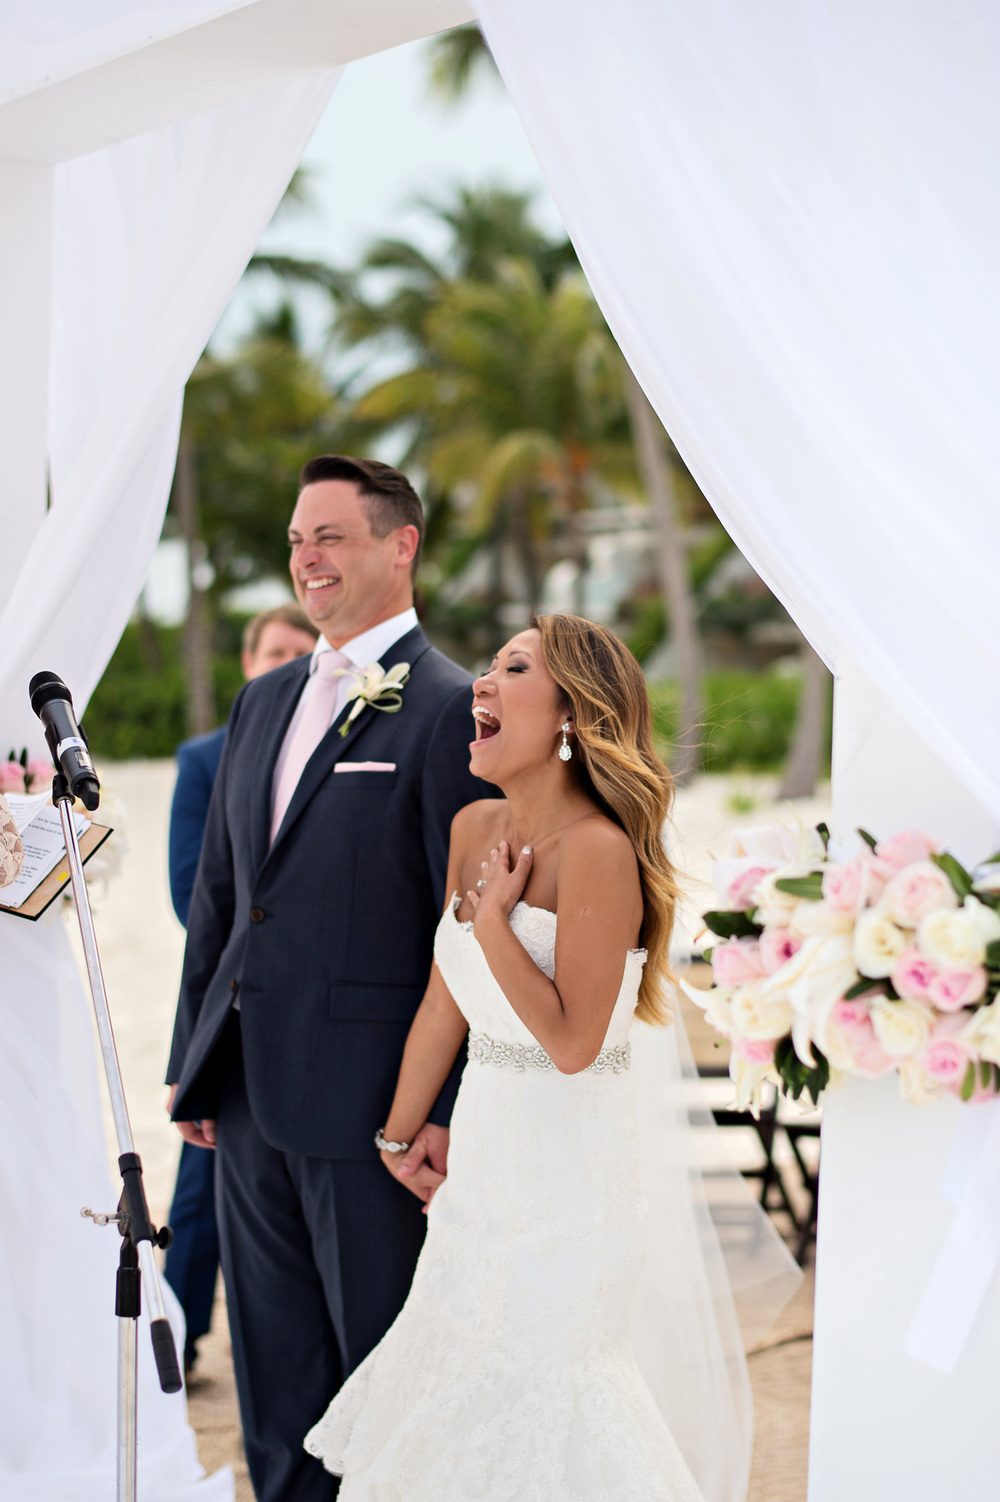 kristenweaver.com | Kristen Weaver Photography | Grand Velas Resort Wedding | Destination Weddings in Riviera Maya Mexico